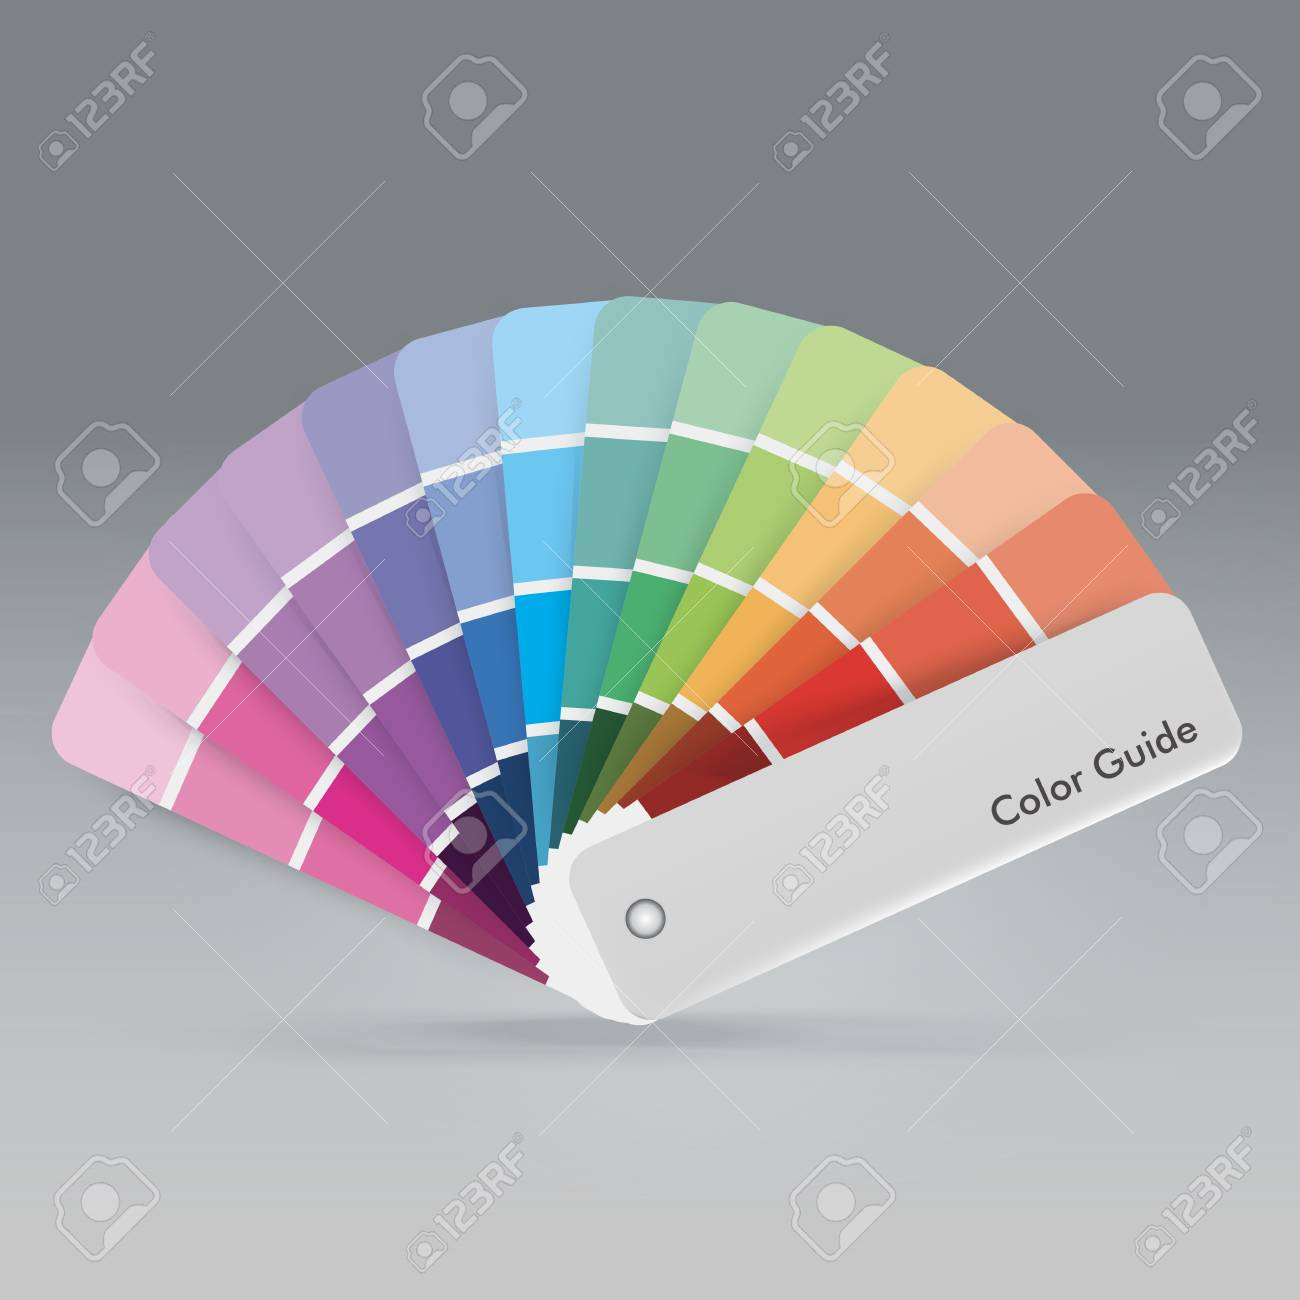 Illustration Of Color Palette Guide For Print, Guide Book For ...